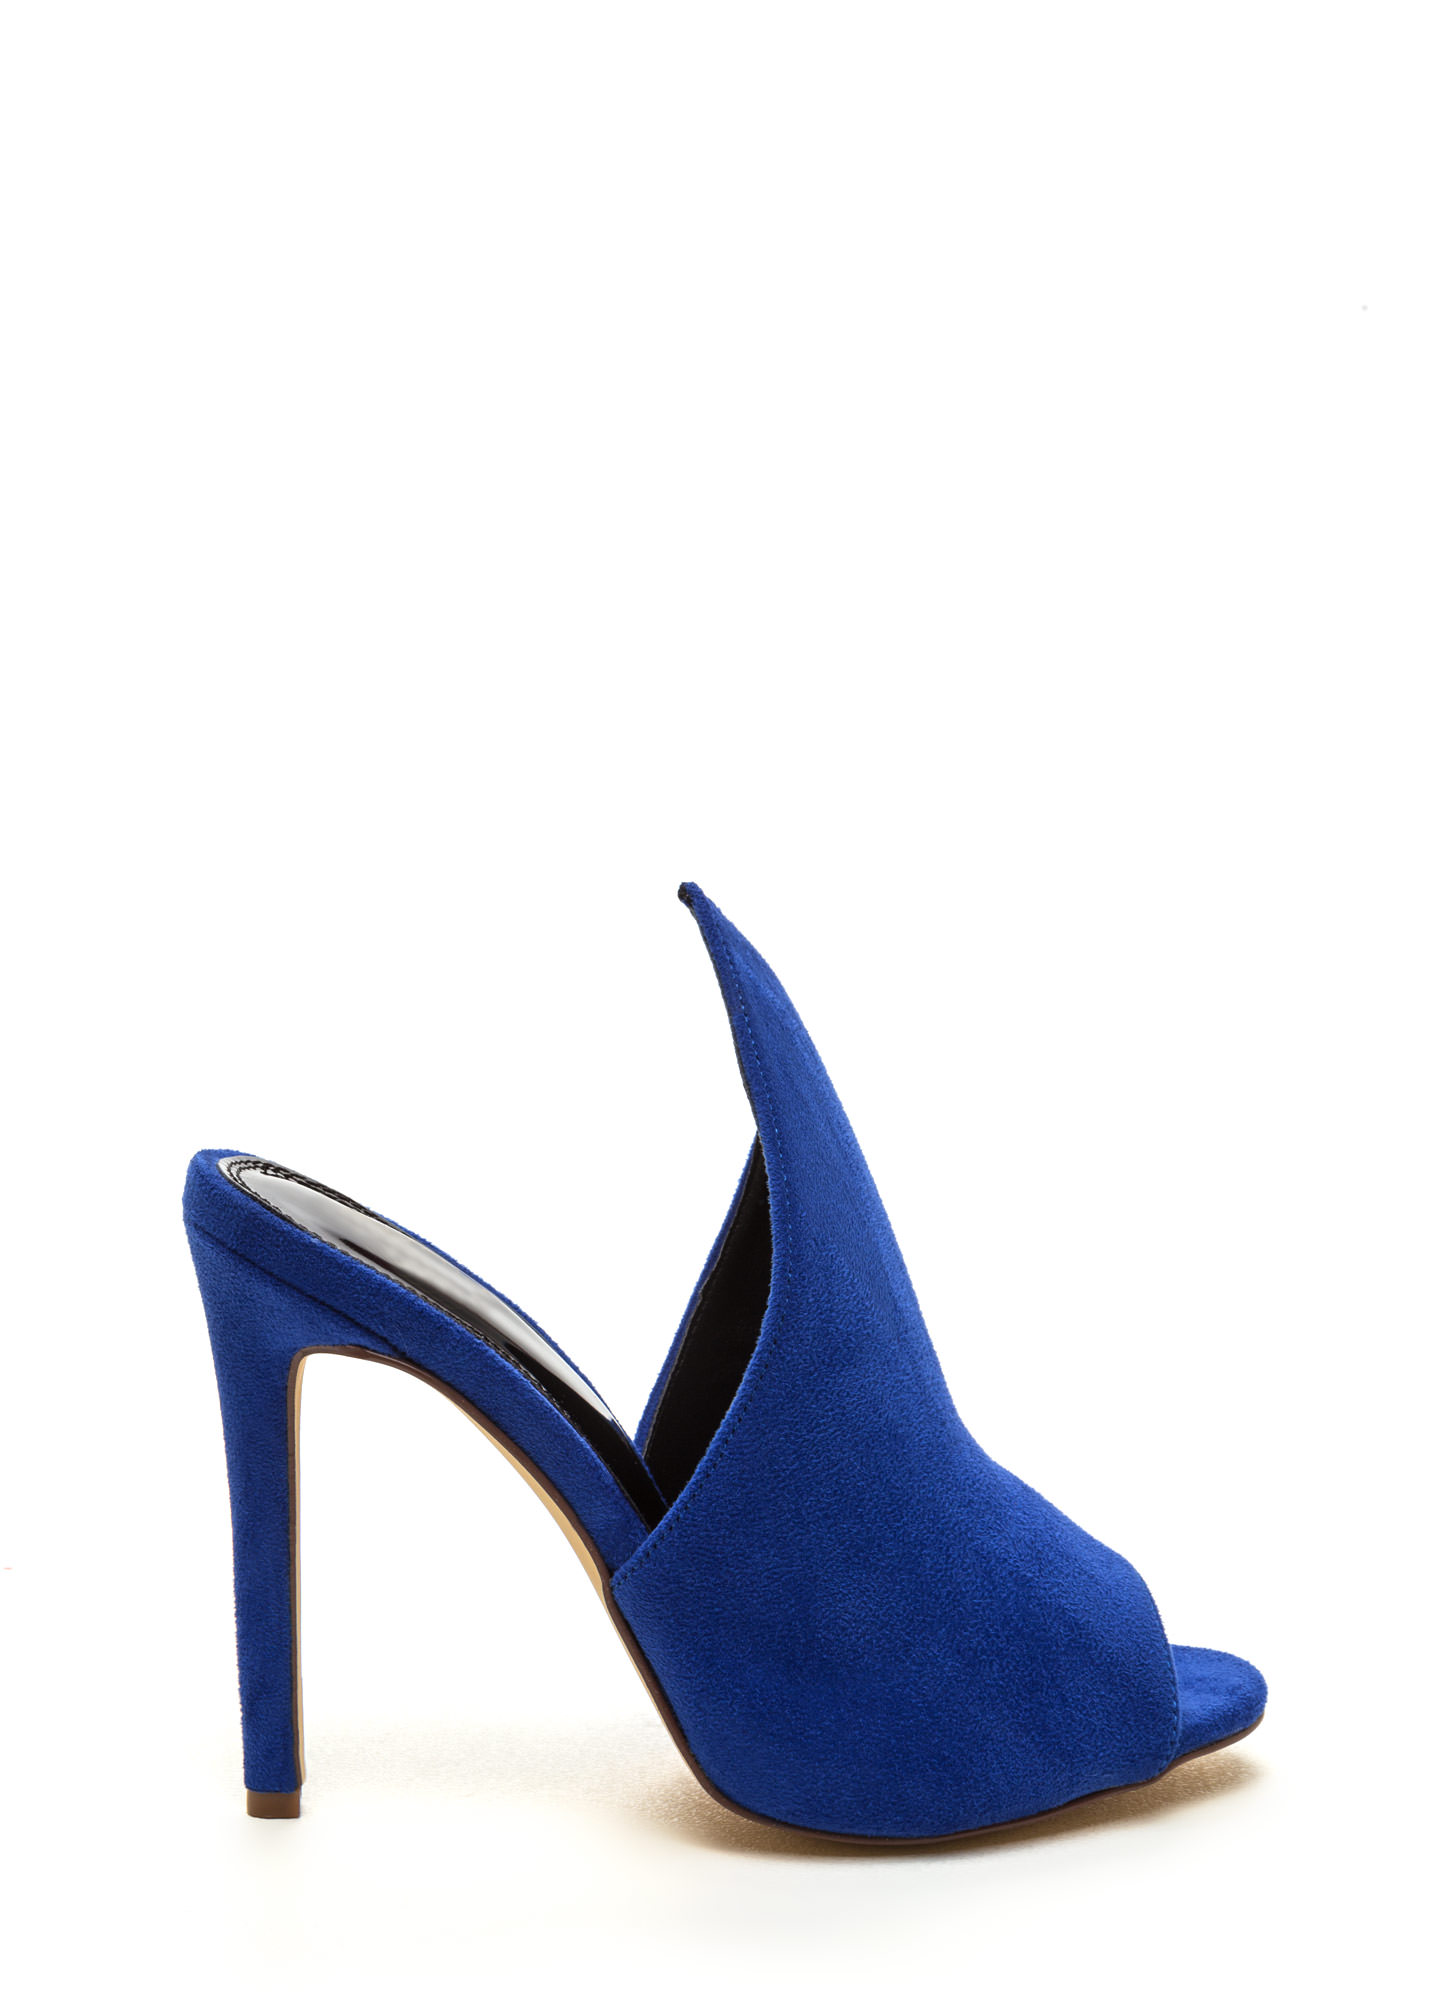 To The Point Faux Suede Mule Heels BLUE (Final Sale)